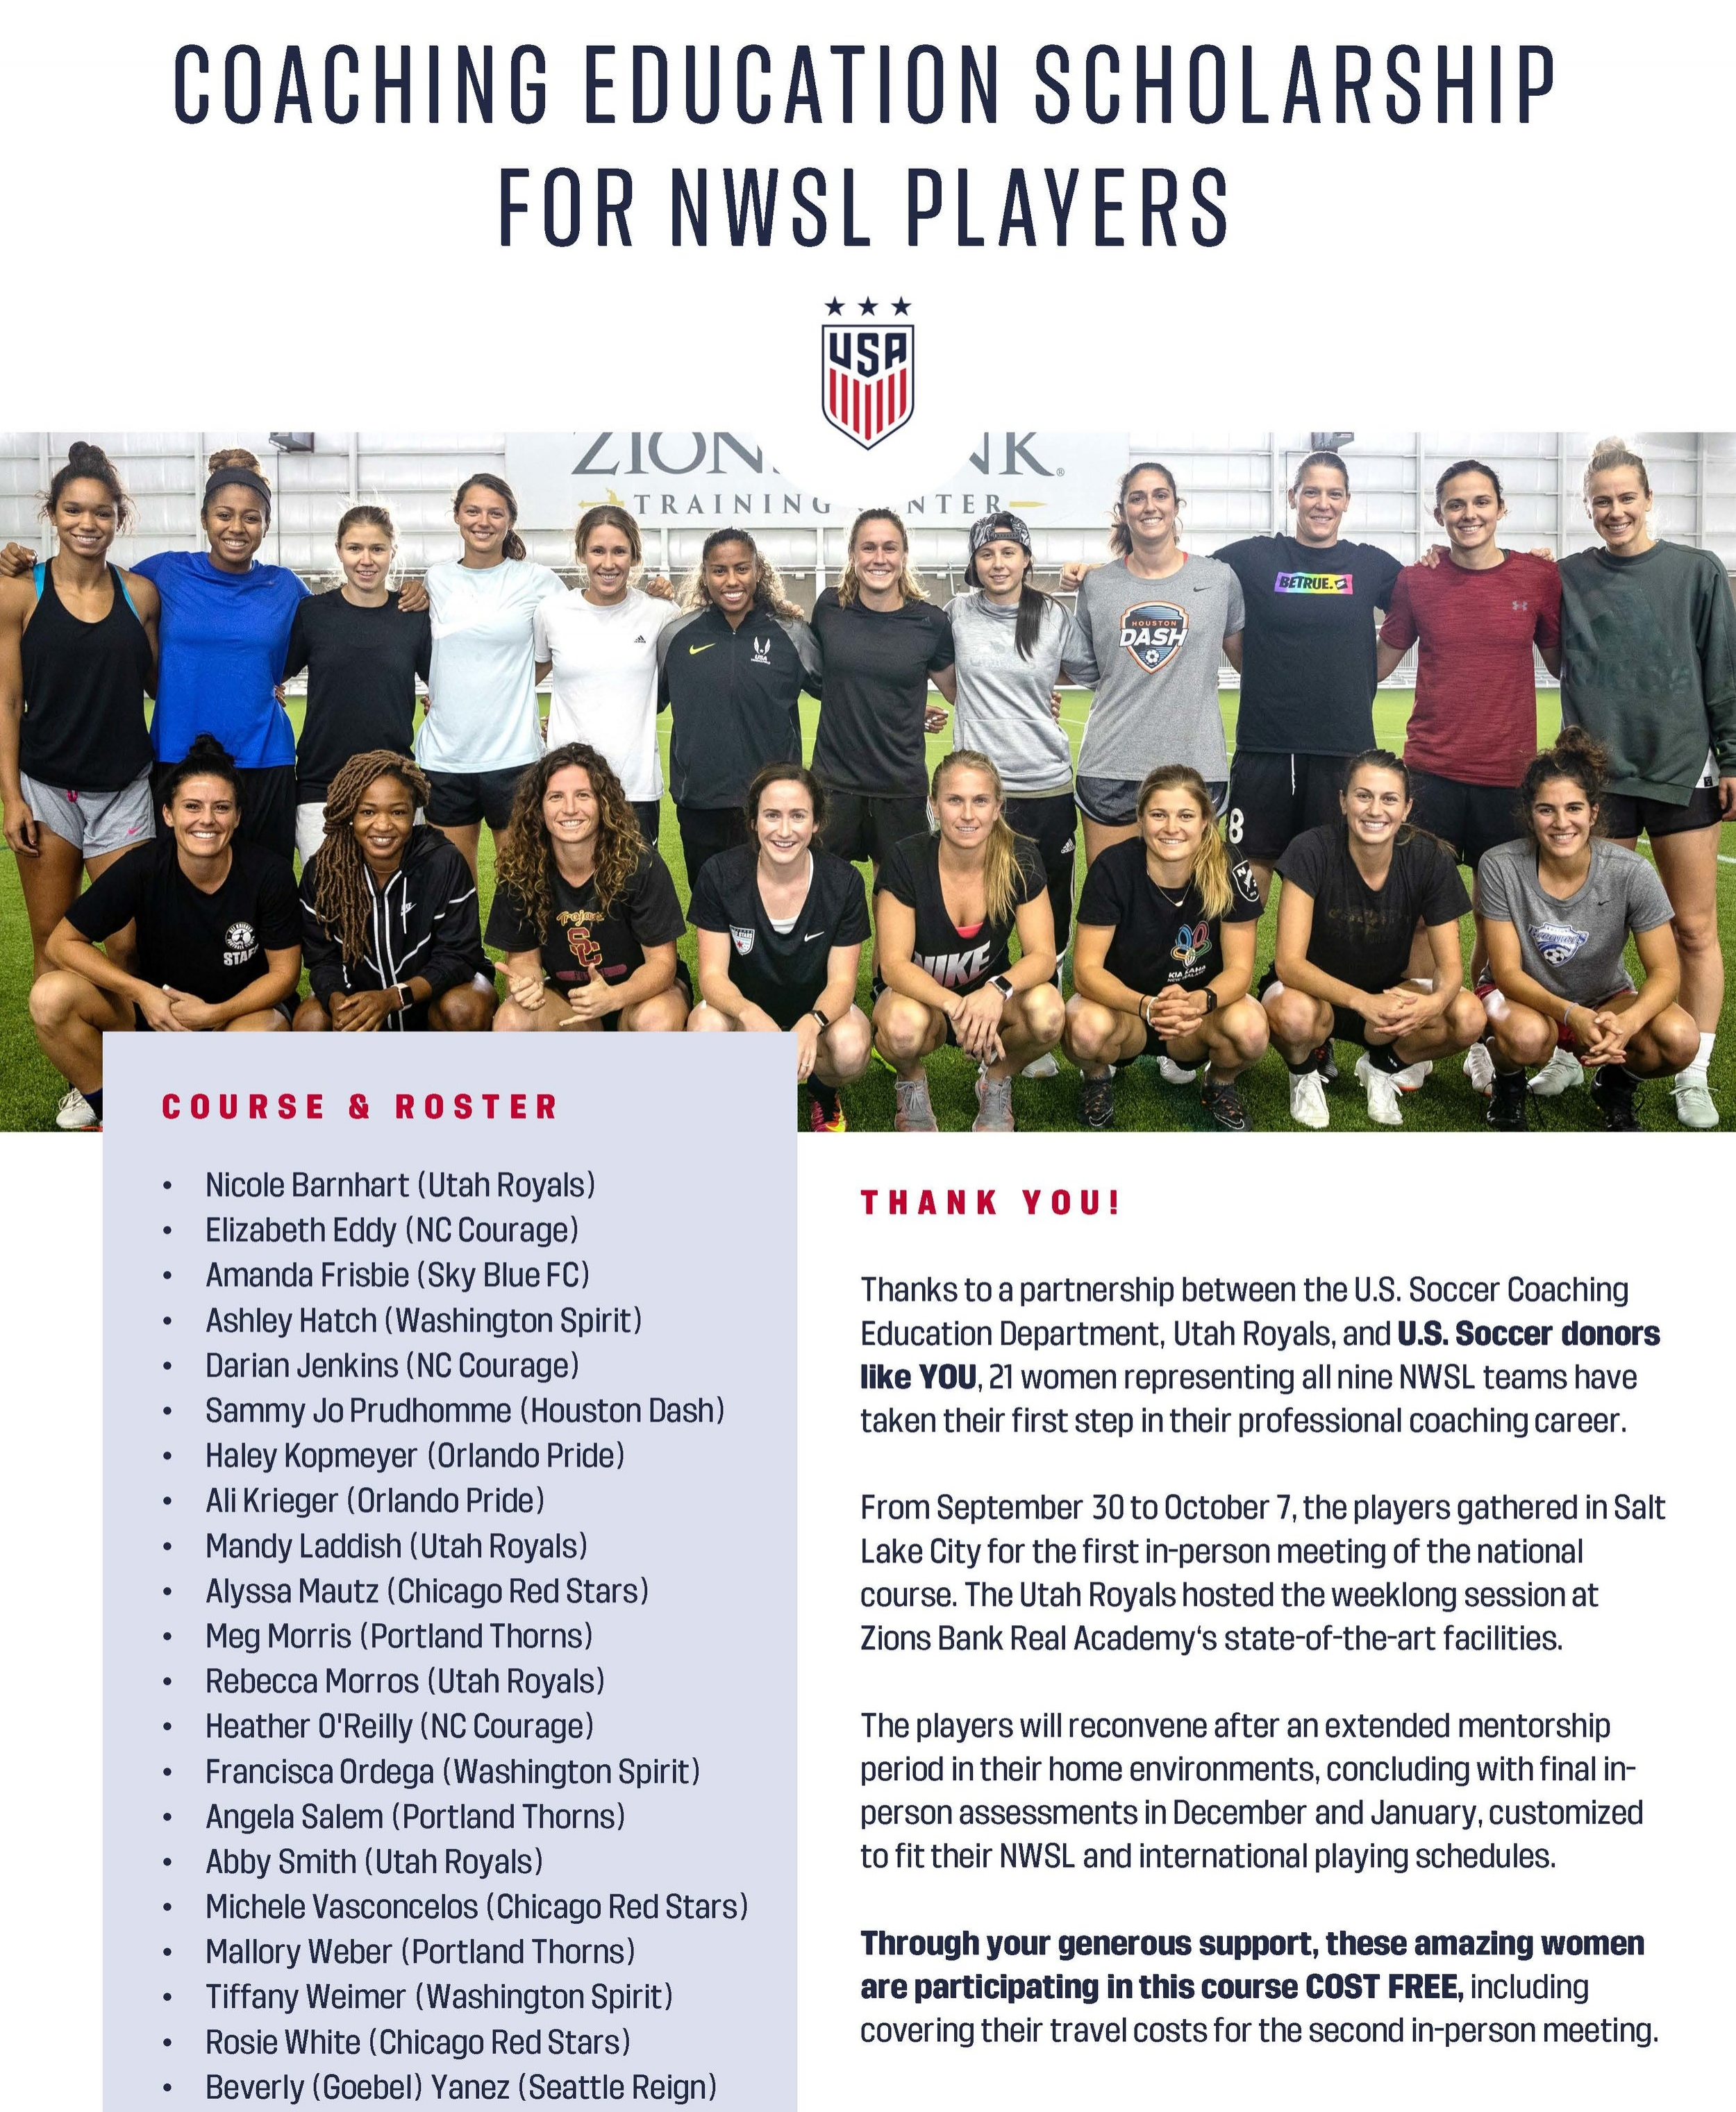 NWSL Coaching Education Scholarship - UPDATE_Page_1.jpg